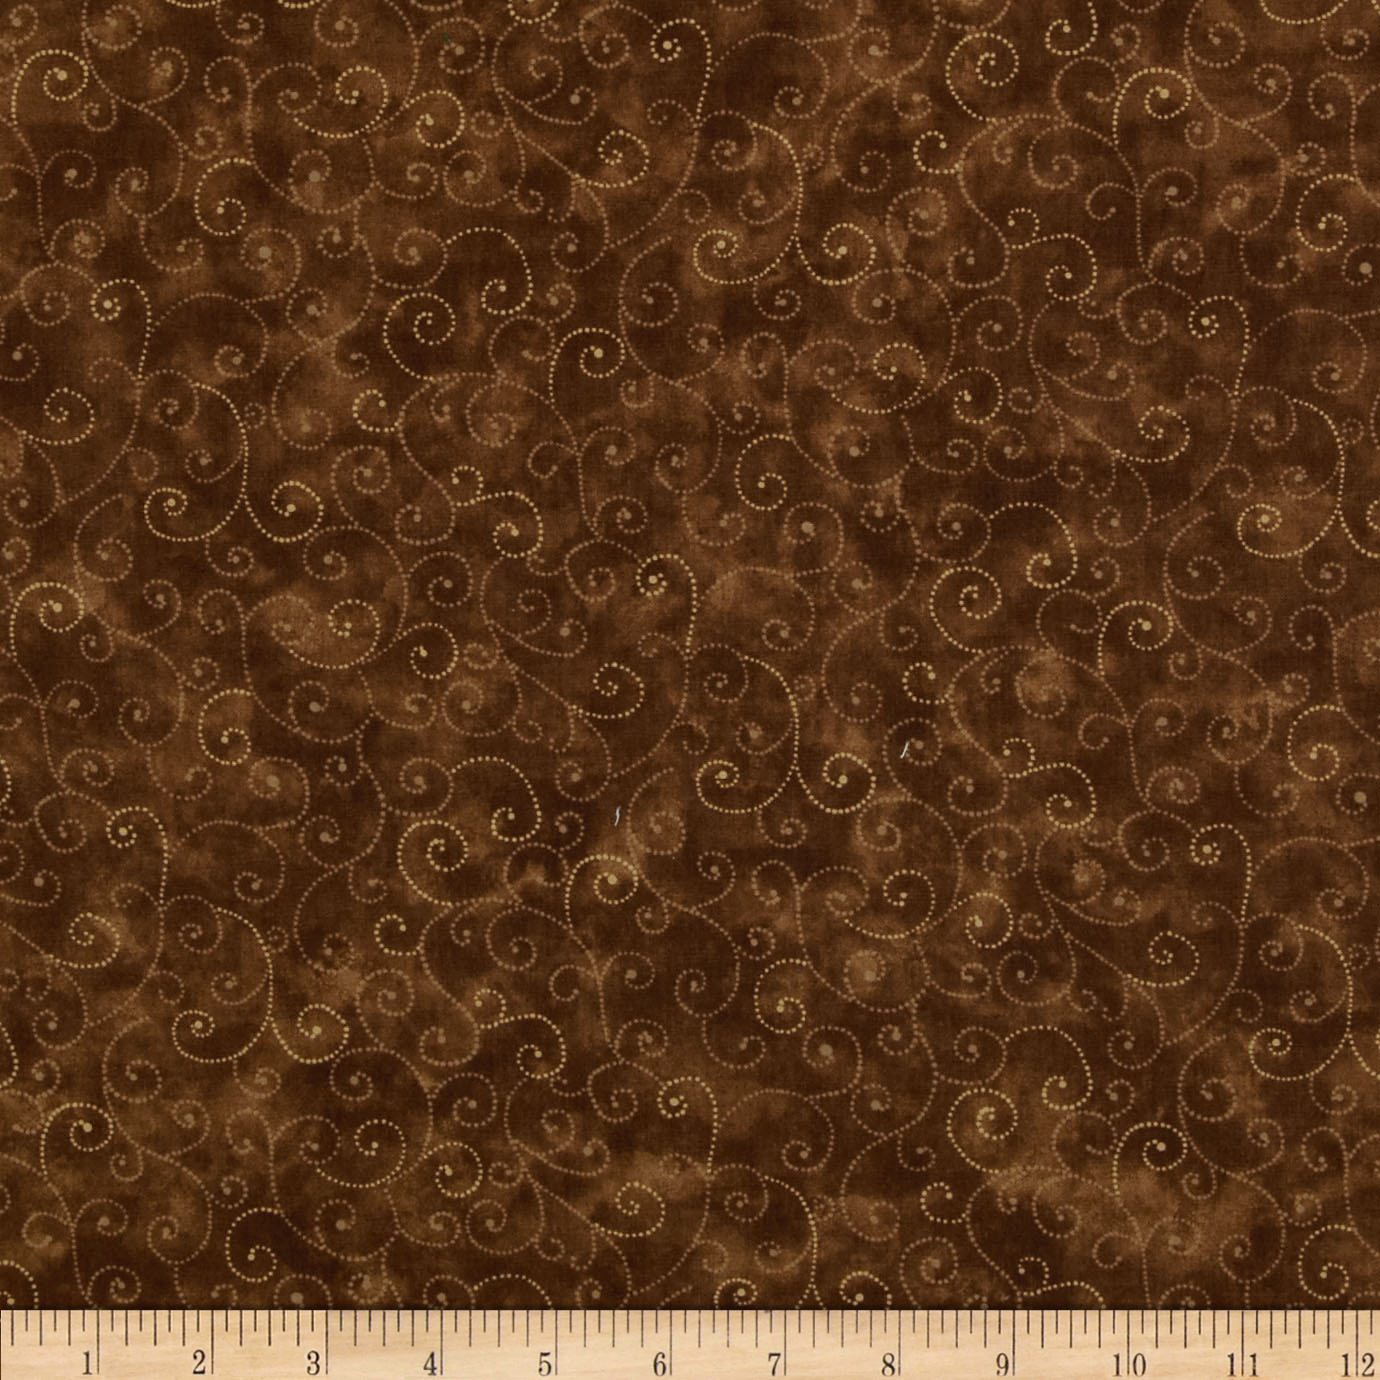 Moda Marble Swirls (9908-81) Chocolate